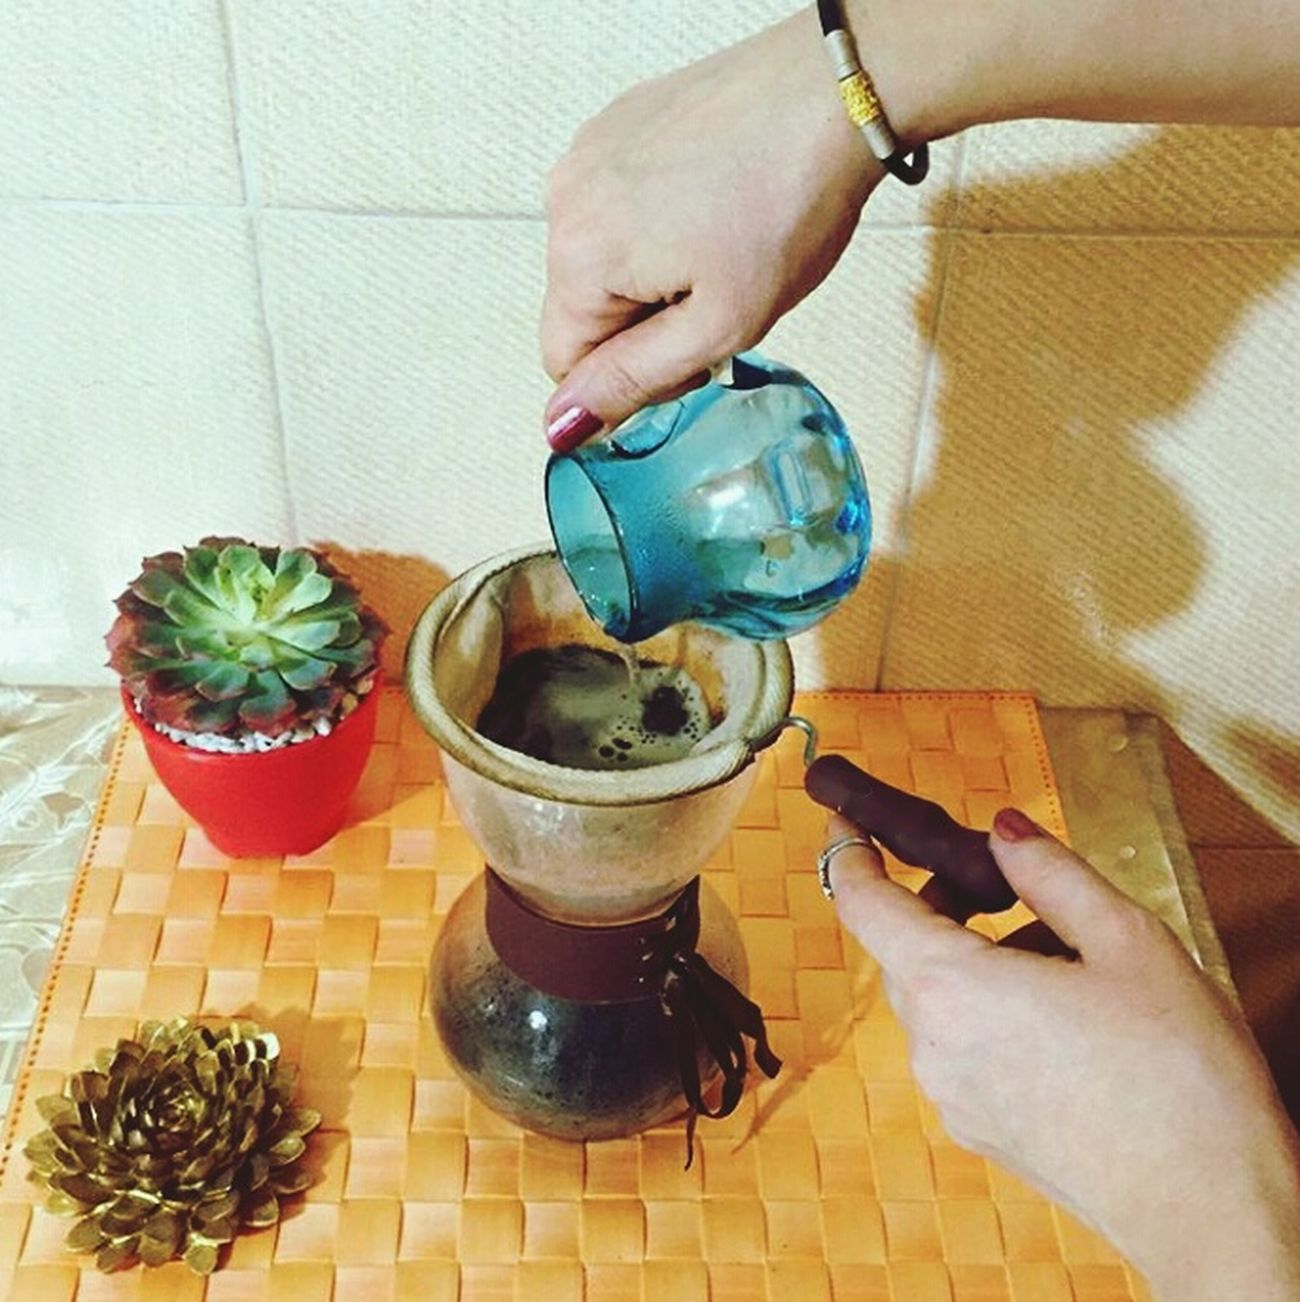 Only you can find your peace💙 Sahar Chemex Iran Iranian Girl Coffee Find Peace You Iranian That's Me! Make Coffee Chemexcoffee Iran♥ Vscocam IPhoneography PhonePhotography Eyemphotography Good Times Smile Happy